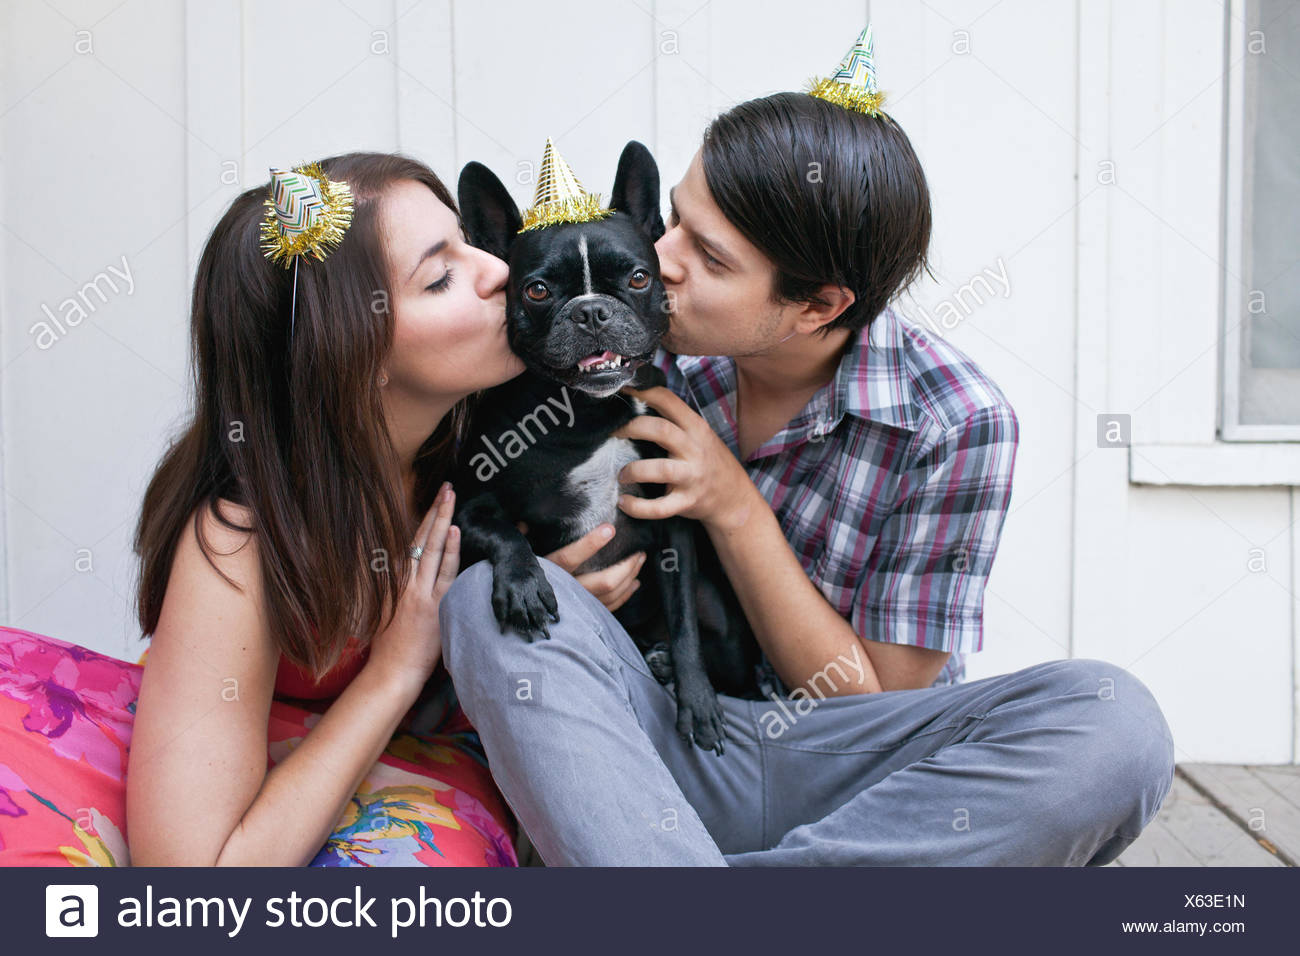 Young couple kissing dog on cheek and wearing party hats - Stock Image